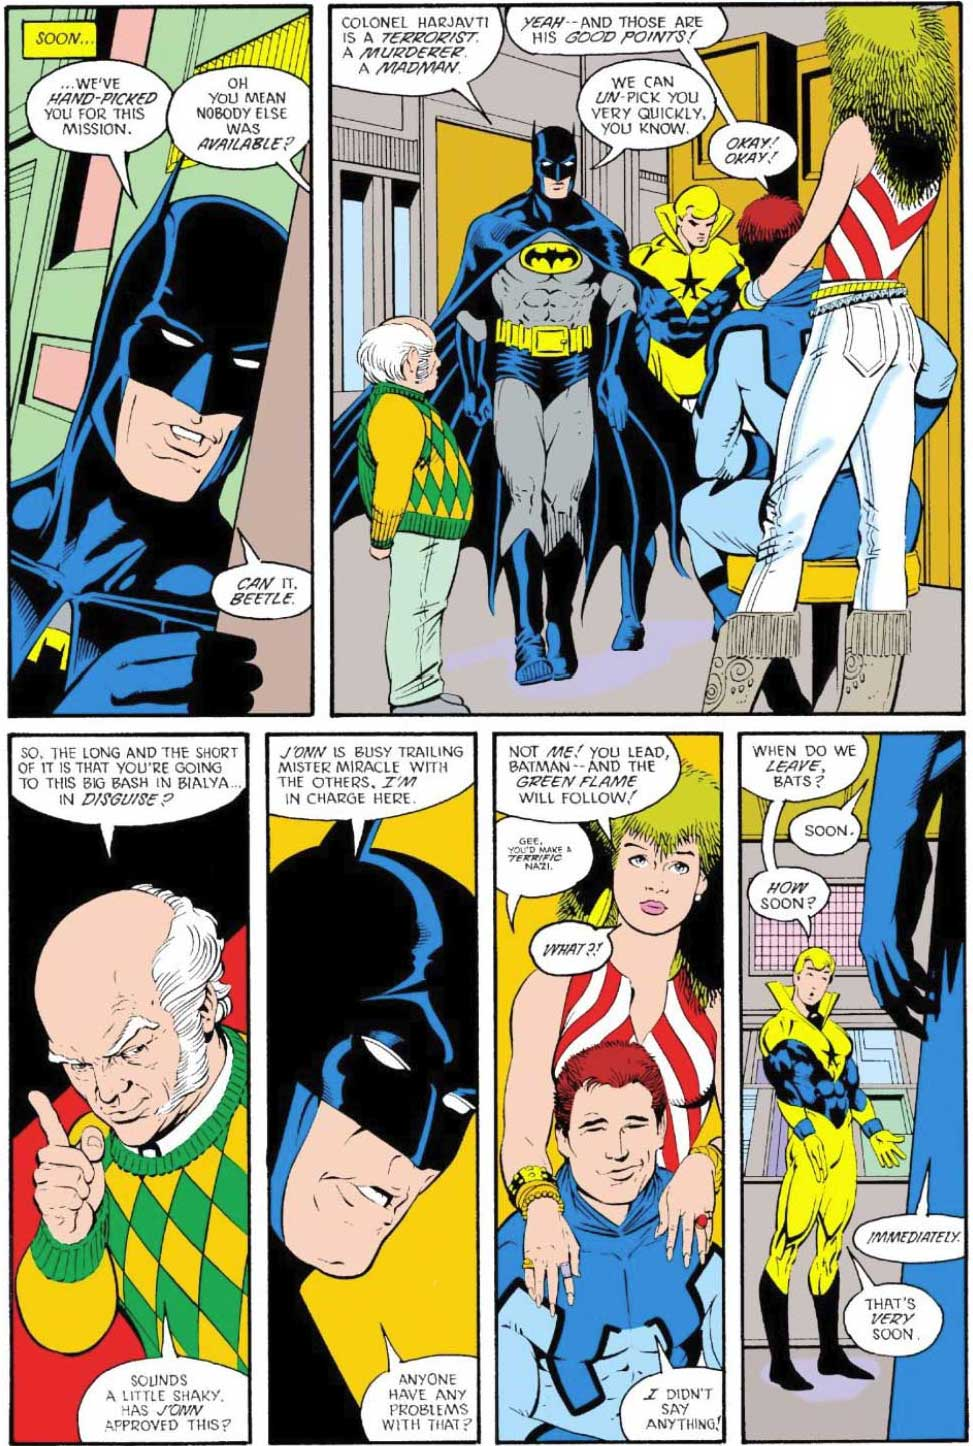 Justice League International #16 by Keith Giffen, JM DeMatteis, Kevin Maguire, and Al Gordon